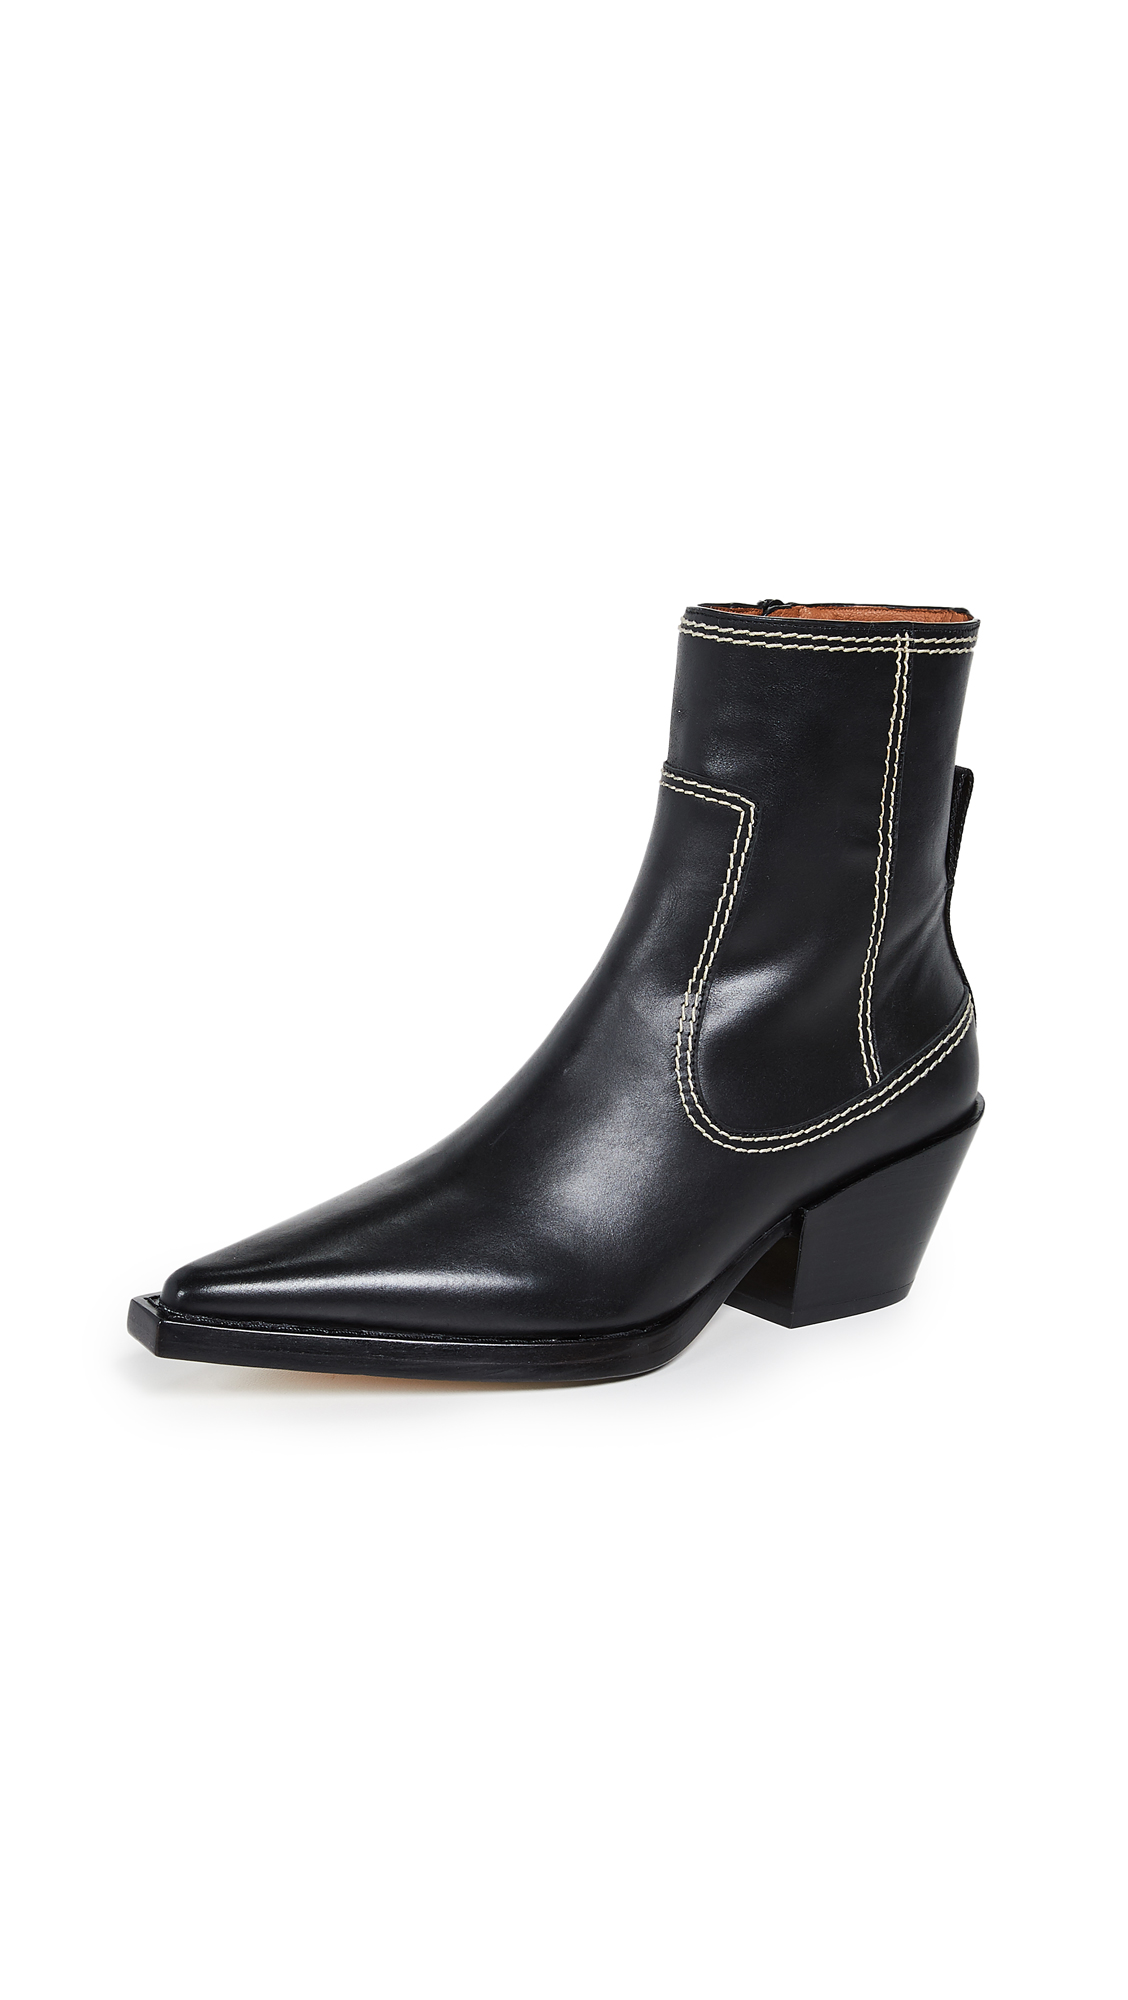 Joseph Rodeo Ankle Boots - Nero